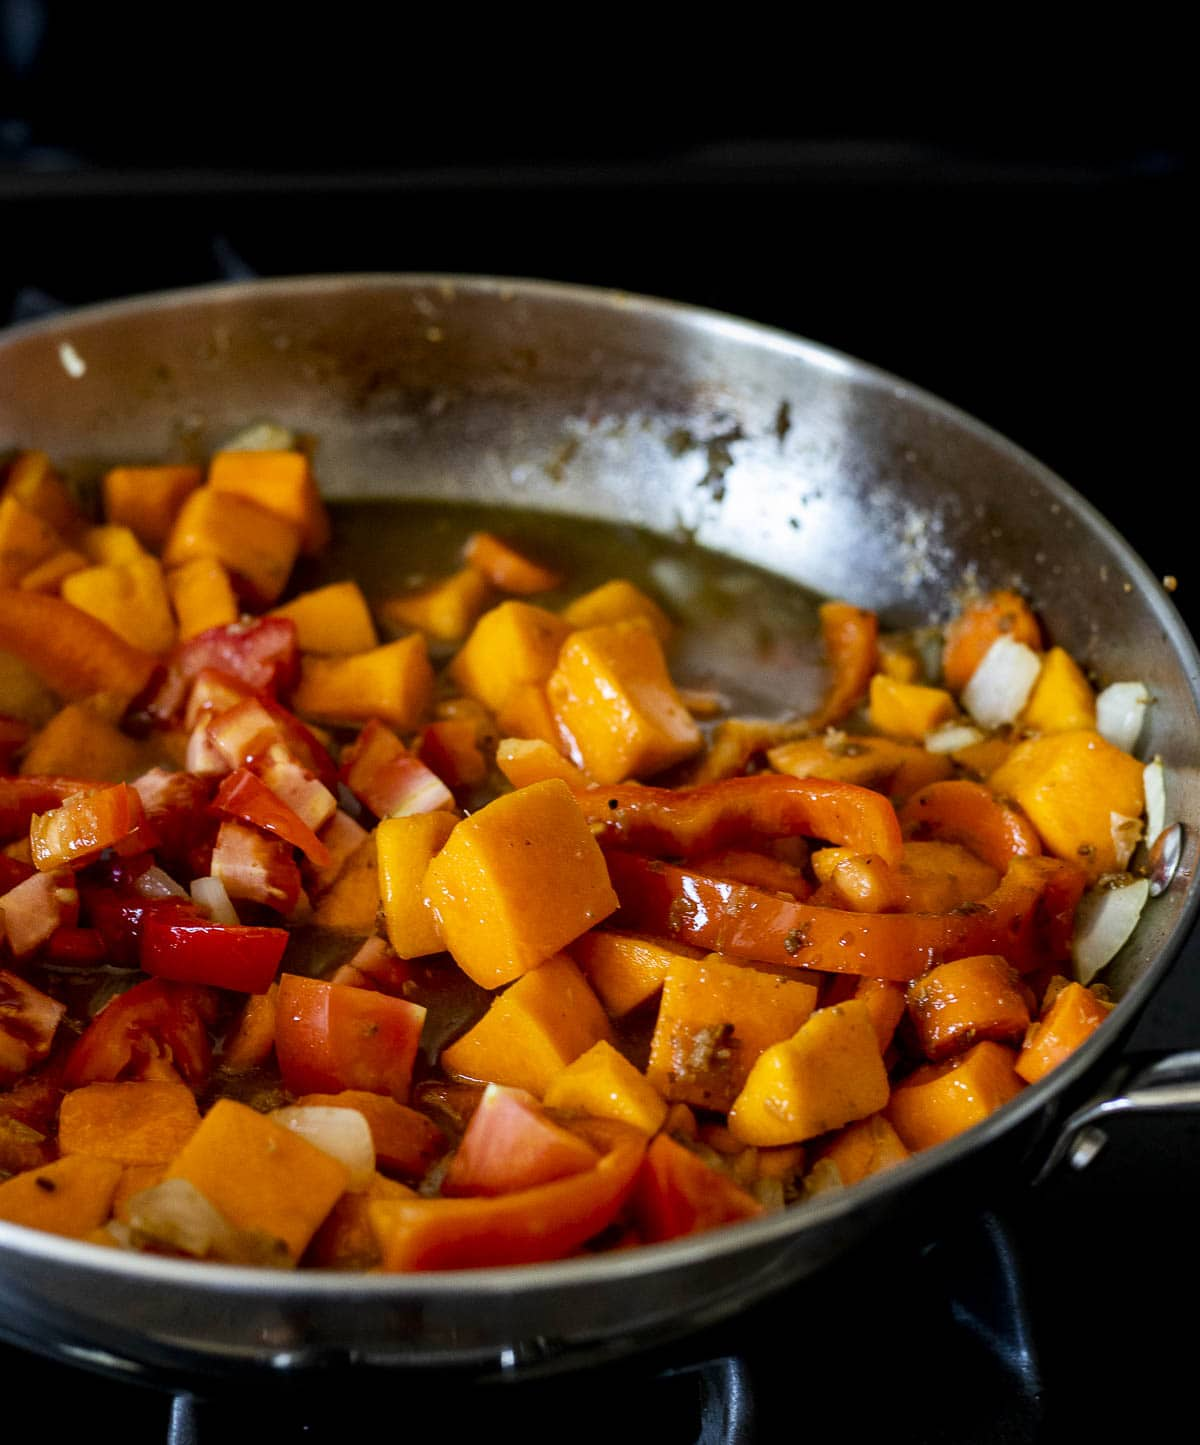 Chicken stock added to the pumpkin curry in the skillet.